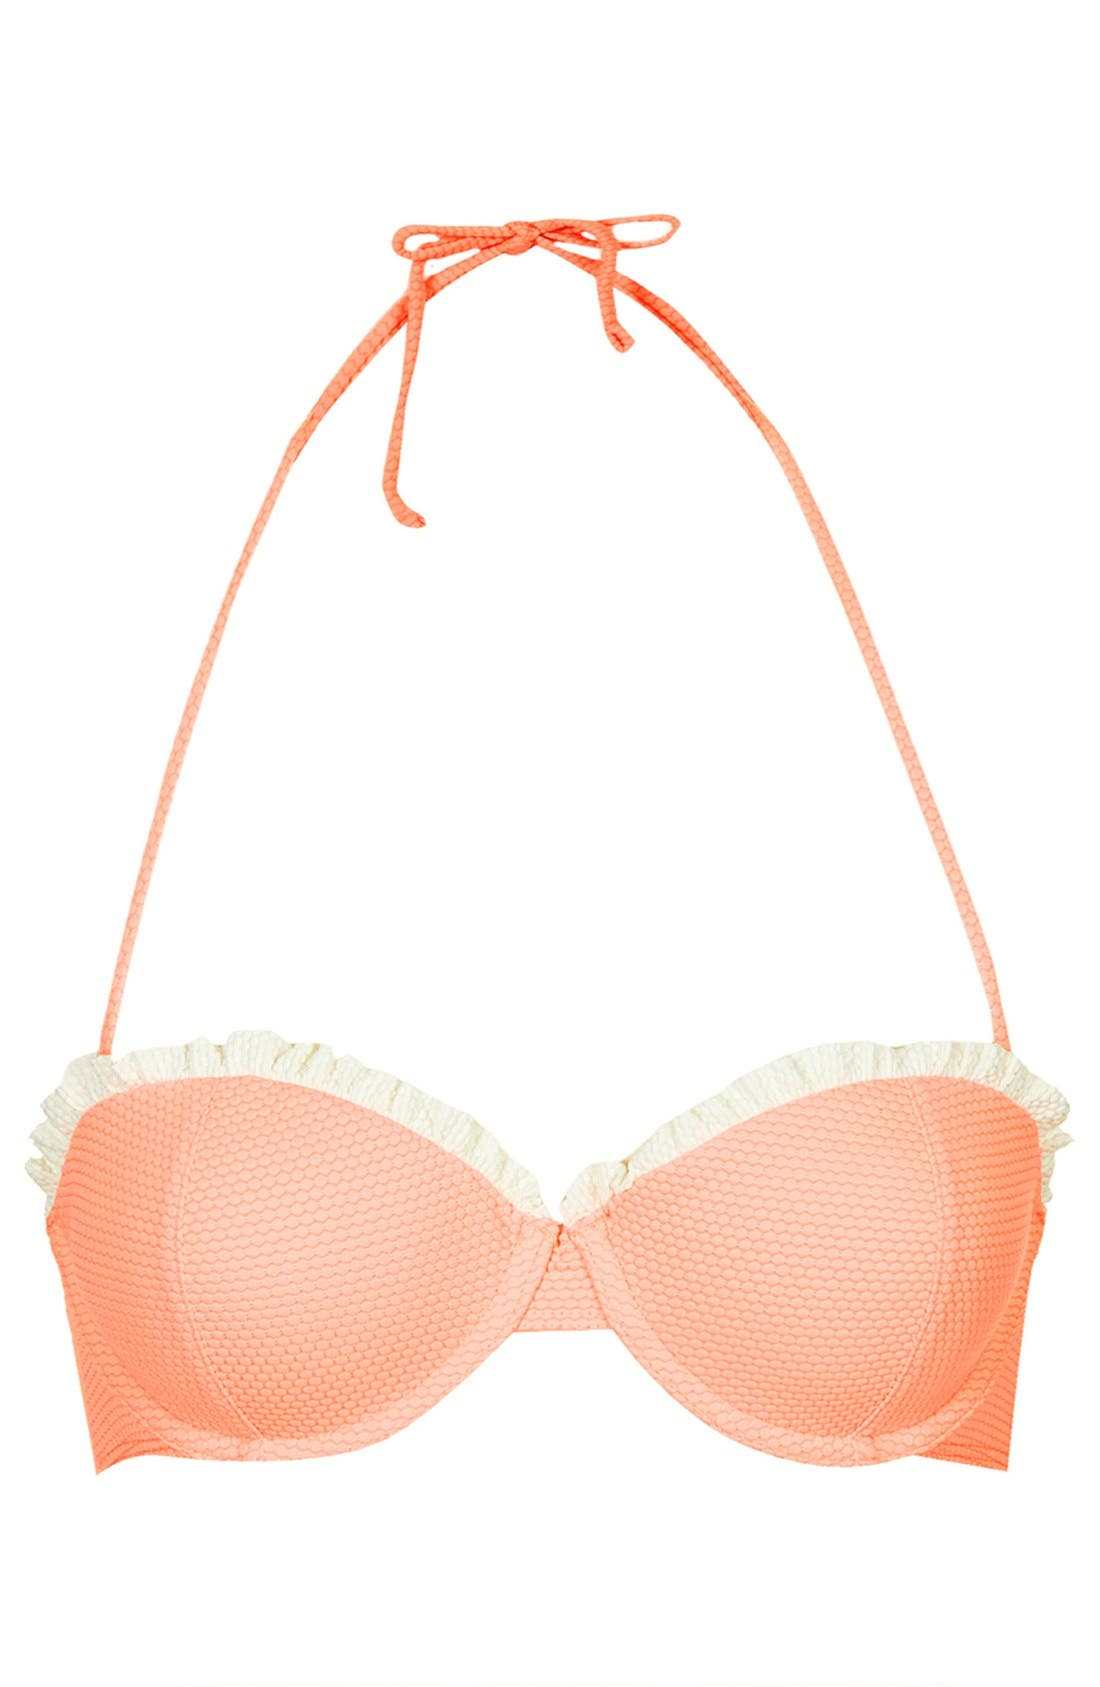 Alternate Image 1 Selected - Topshop Ruffle Trim Push-Up Bikini Top